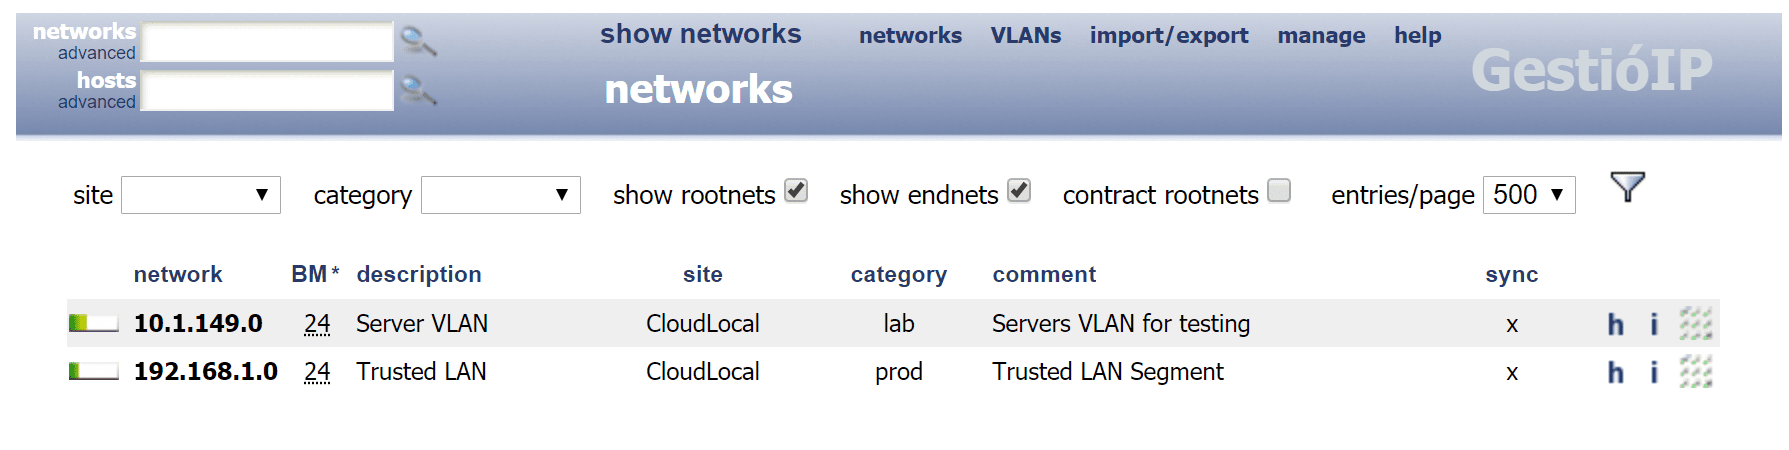 After-adding-a-couple-of-networks-to-Gestioip